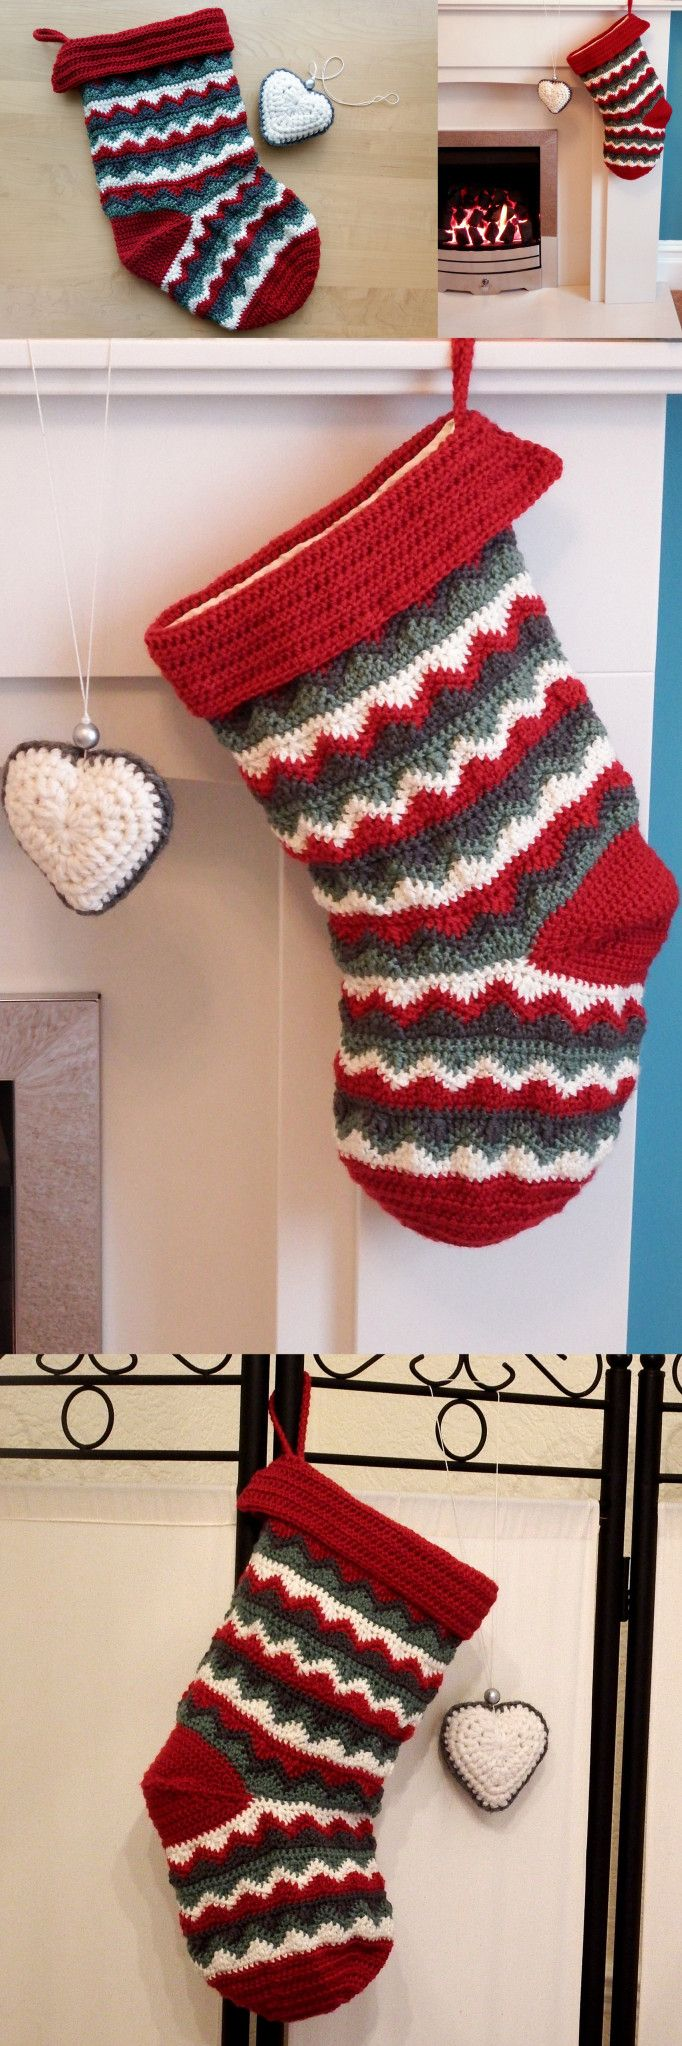 Home made zigzag Christmas Stocking - free crochet pattern ...